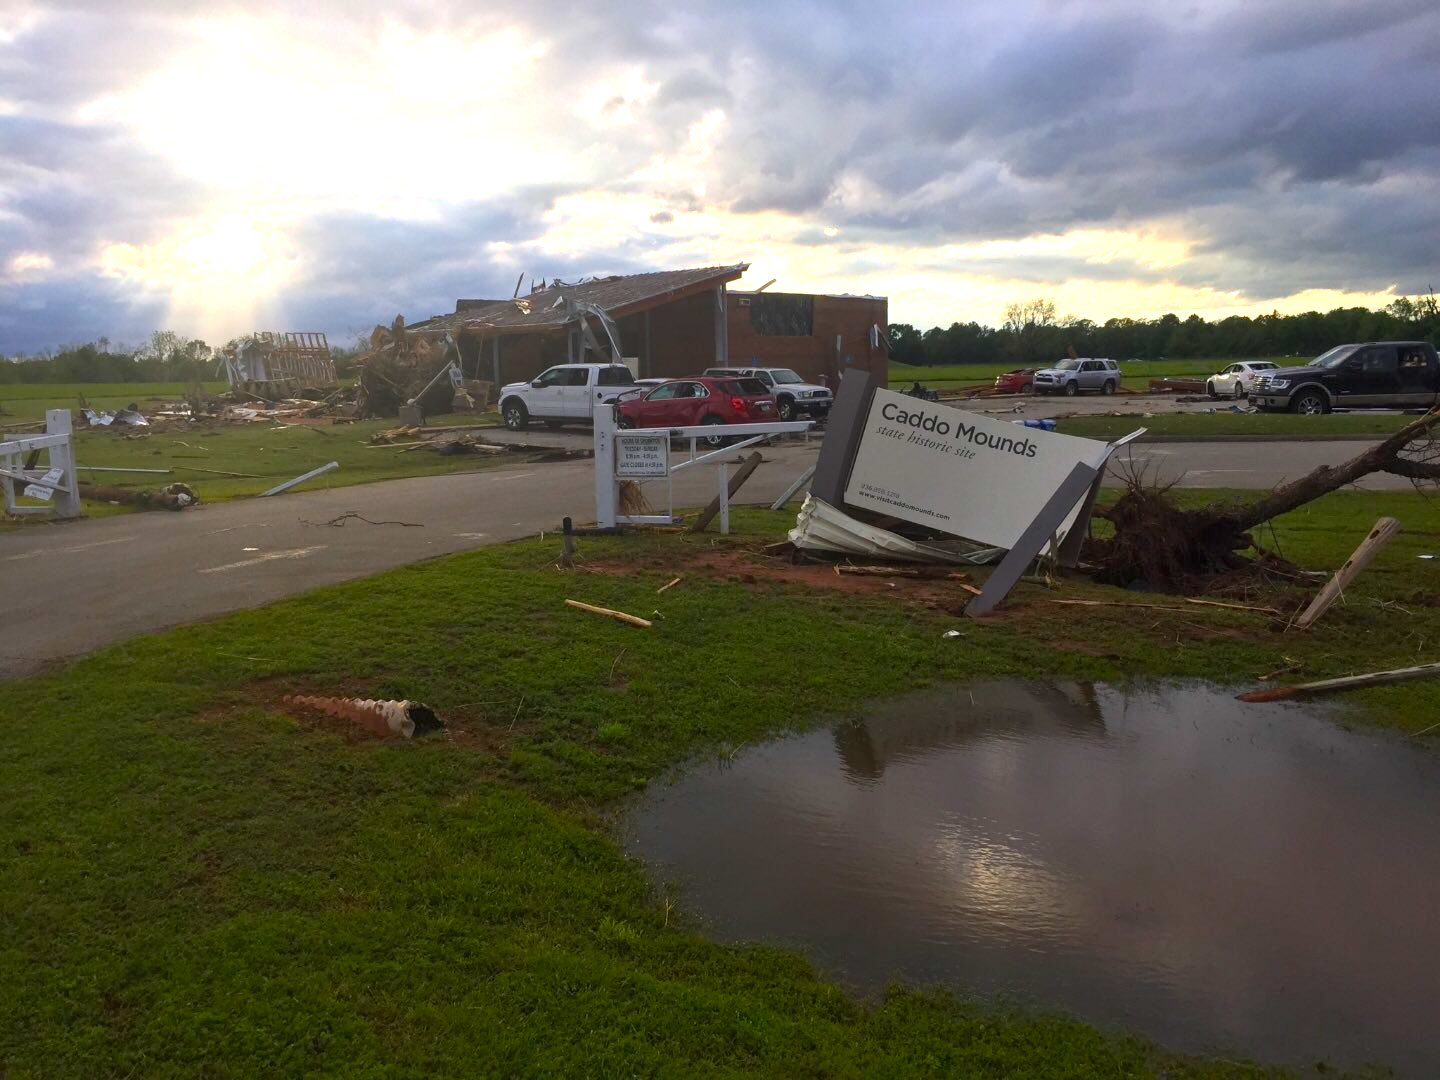 One person reported dead as tornado strikes Caddo Mounds State Historic Site